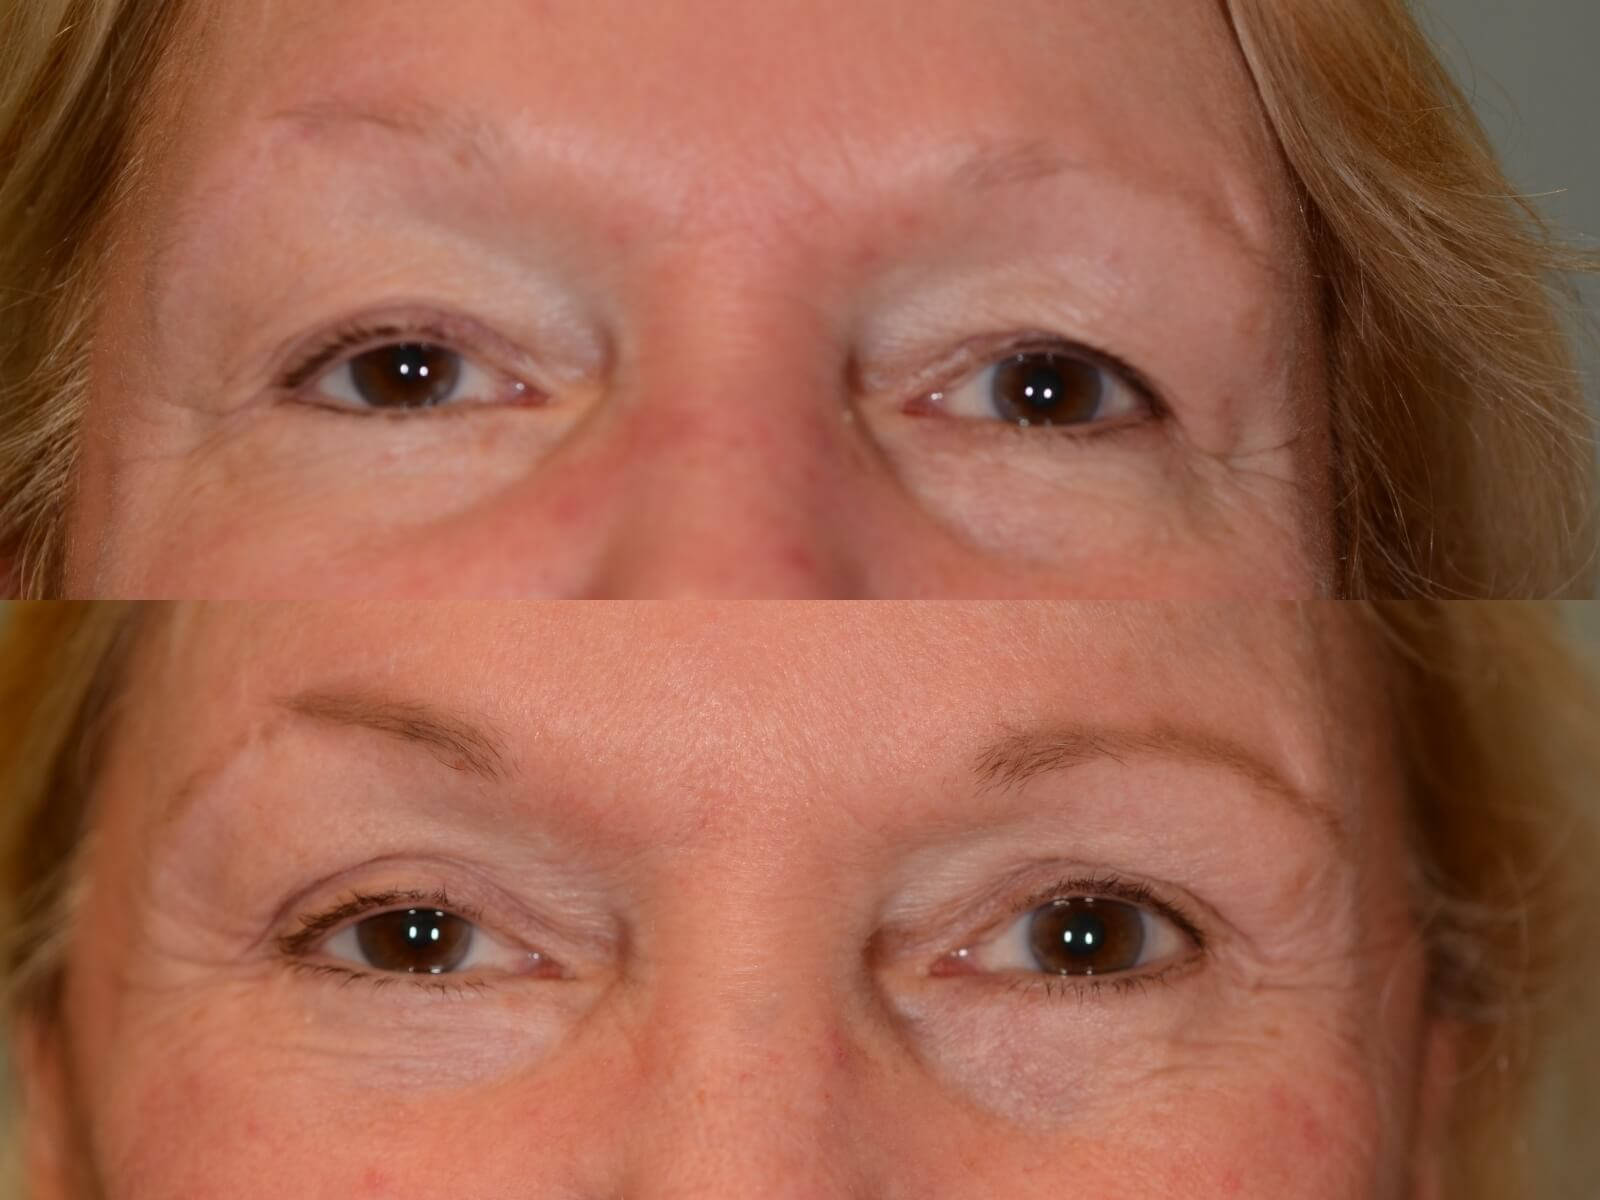 Rejuvenated Facial Features Before and After